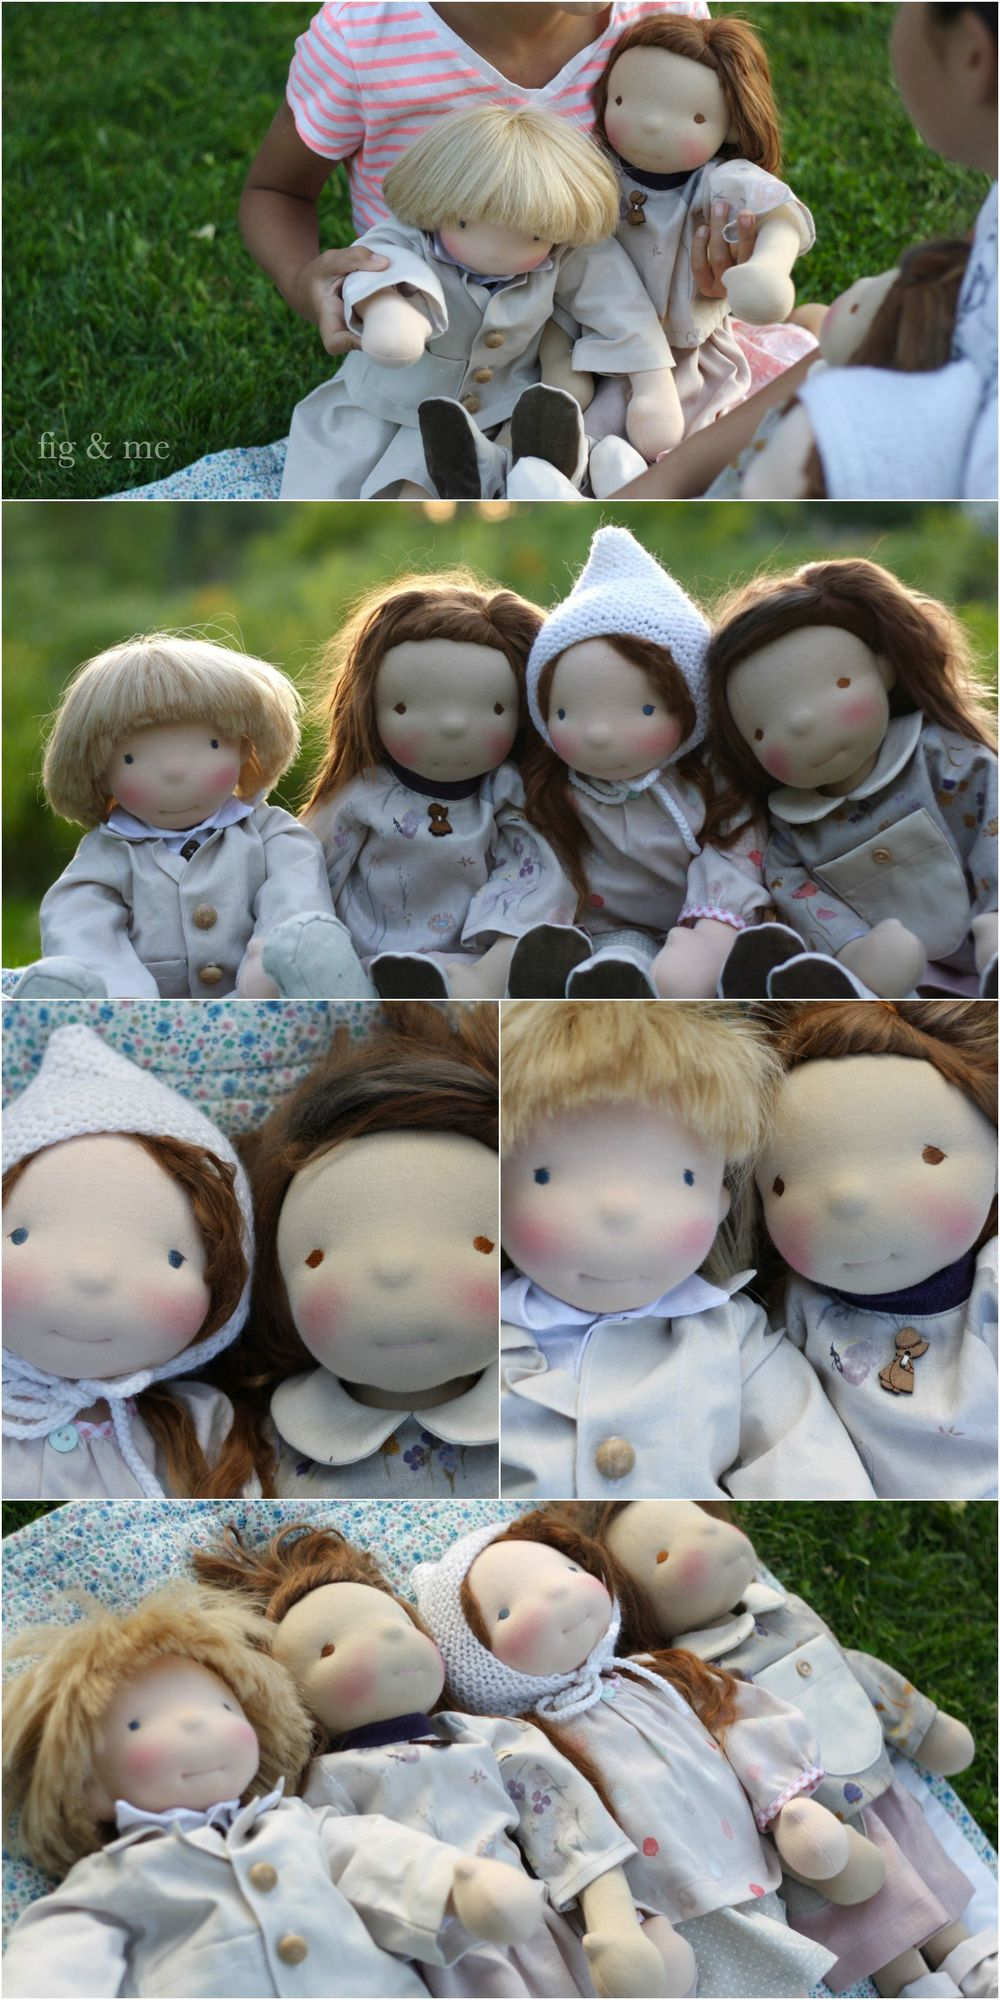 Four custom natural cloth dolls by Fig and me. Full of precious details to entertain their mom for hours.